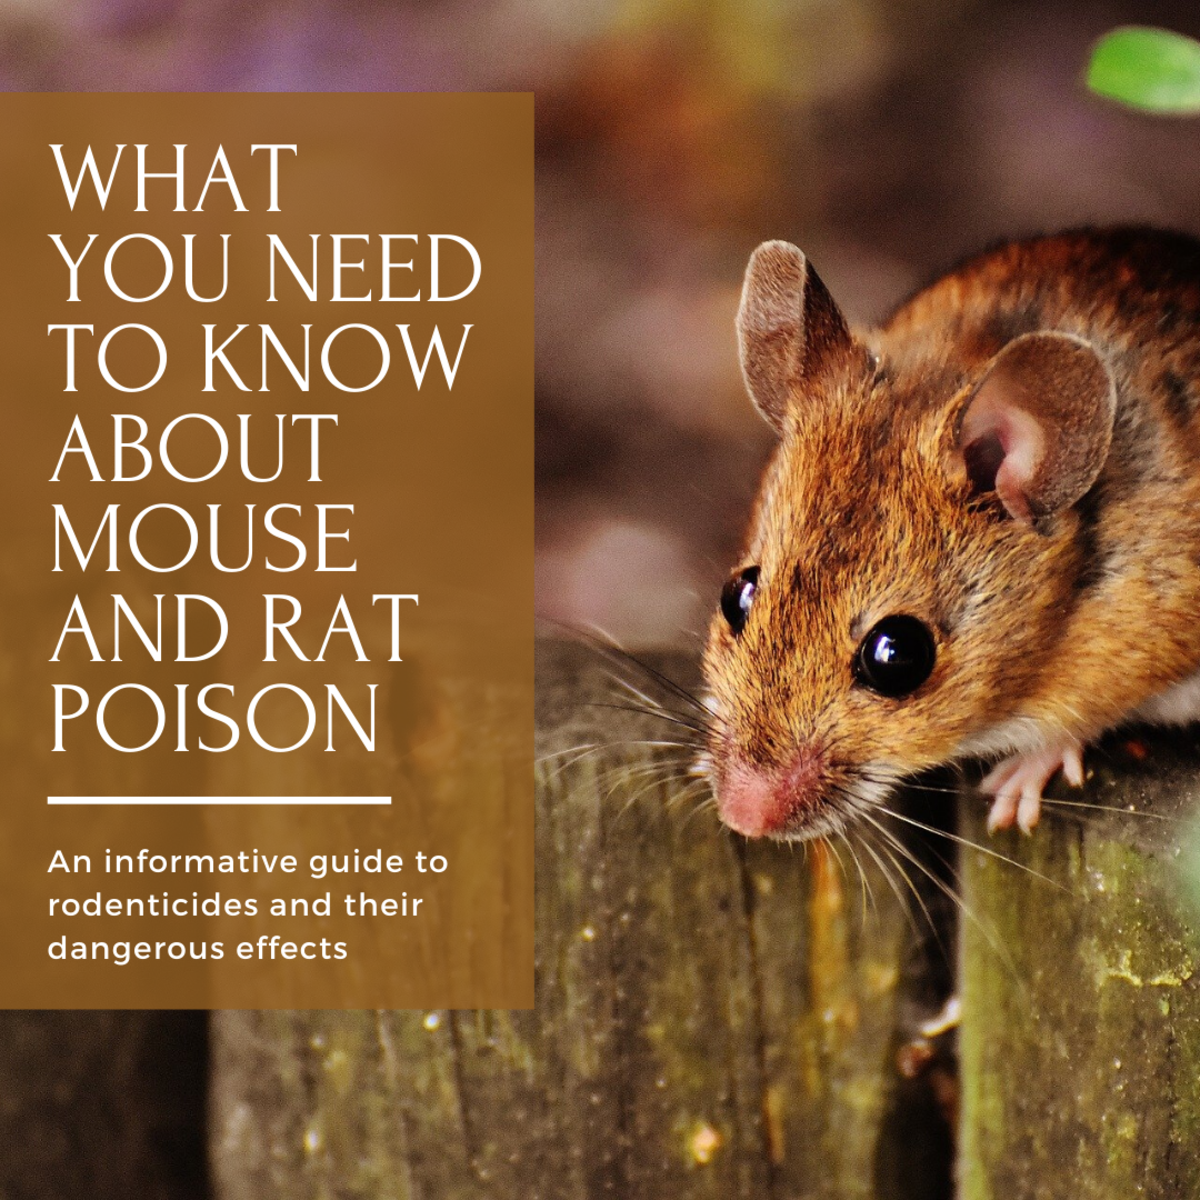 This article will break down the perils of first- and second-generation rodenticides and how you can control your rodent problem with less dangerous measures.